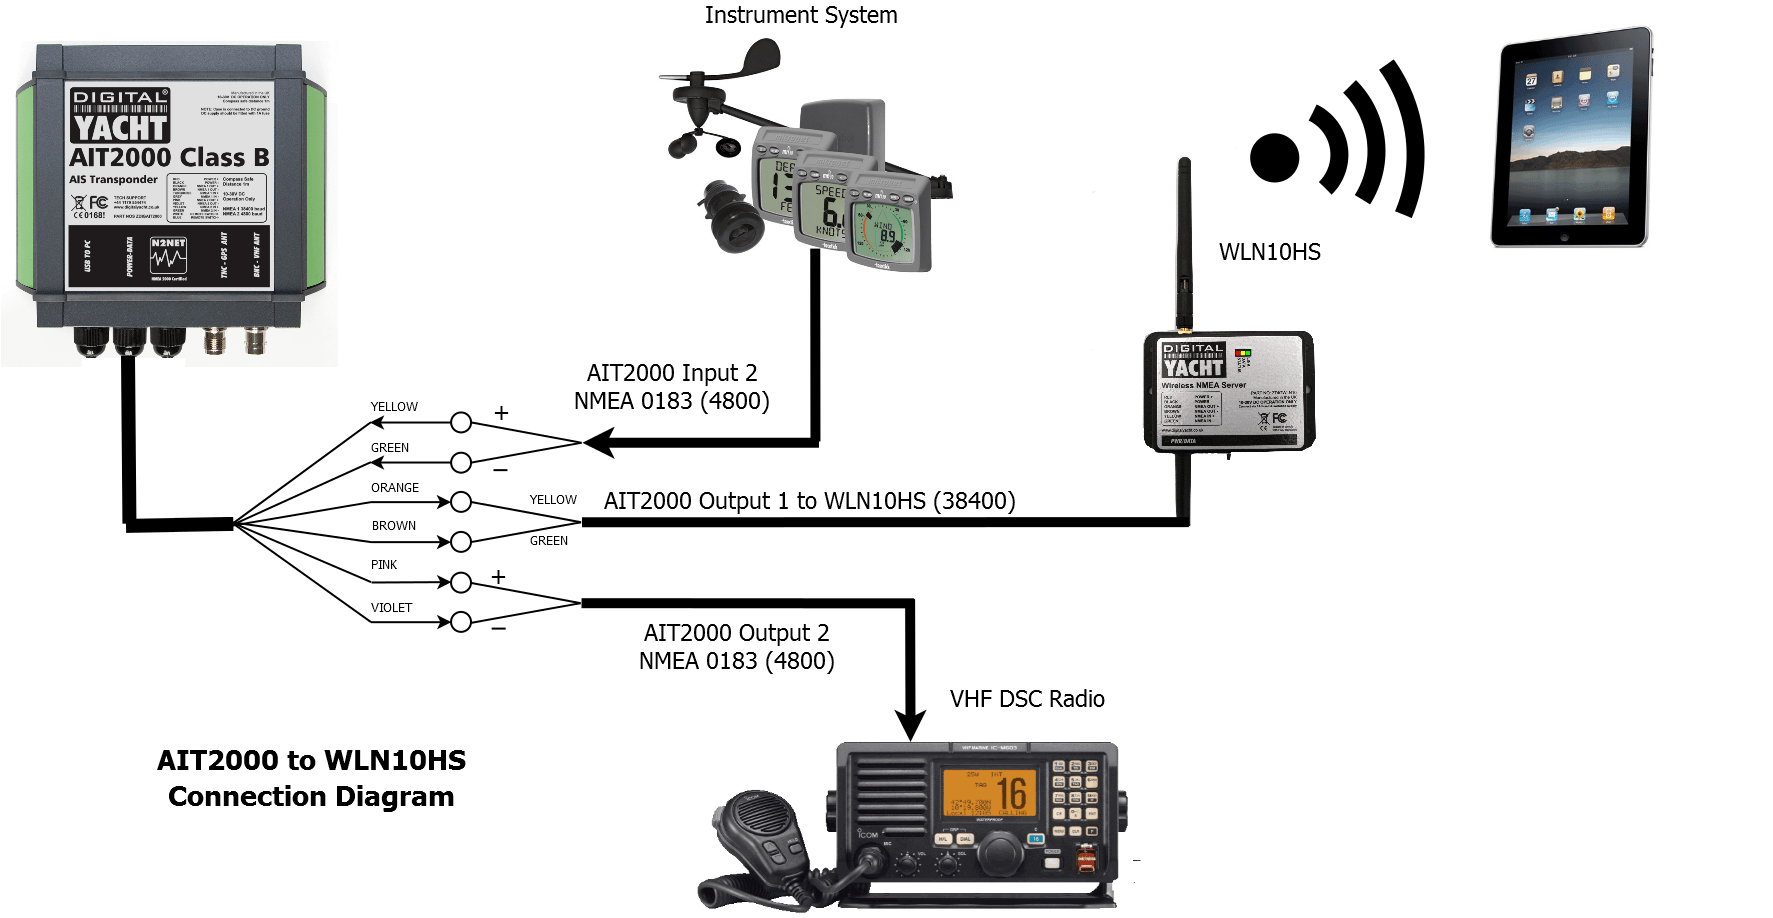 Goldstar Gps Wiring Diagram 27 Images Air Conditioner Diagrams Trane Ait2000 Nmea Connections To Wln10hs 1fit10242c530